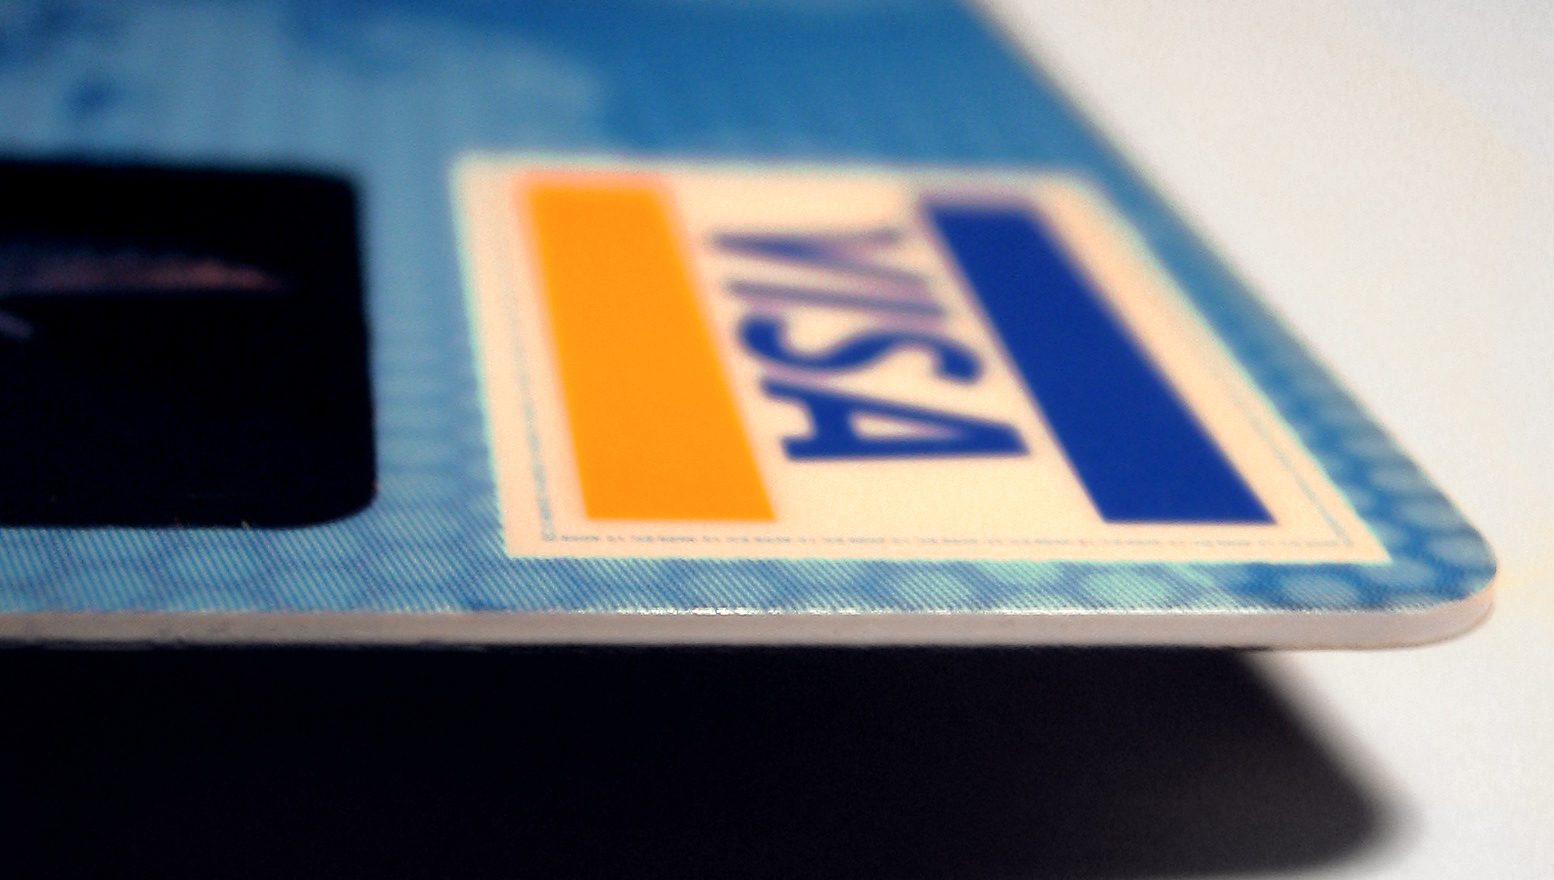 Visa to Speed Up Chip Processing